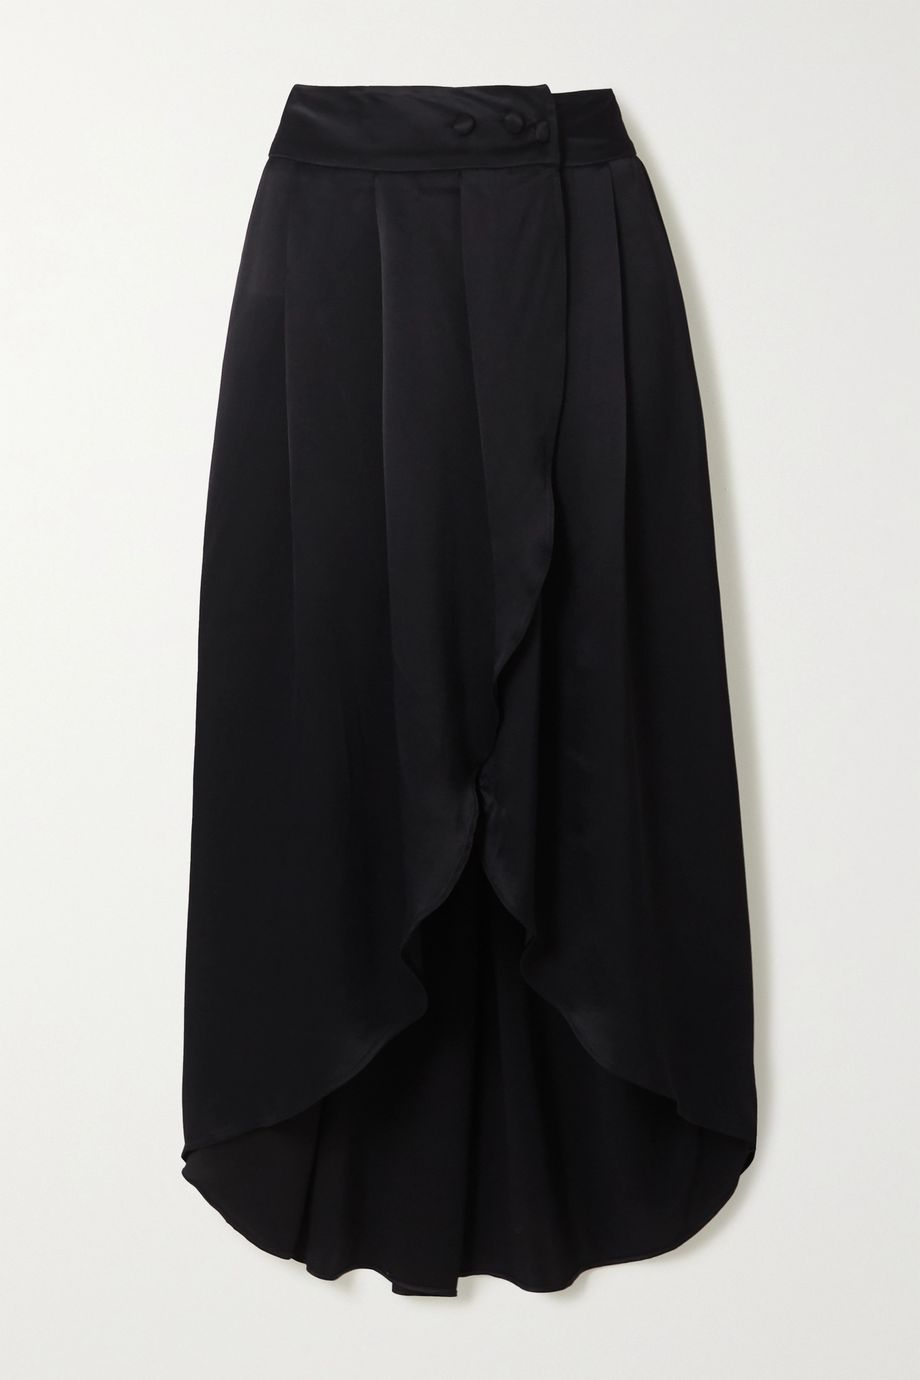 Envelope1976 + NET SUSTAIN Seminyak asymmetric satin skirt